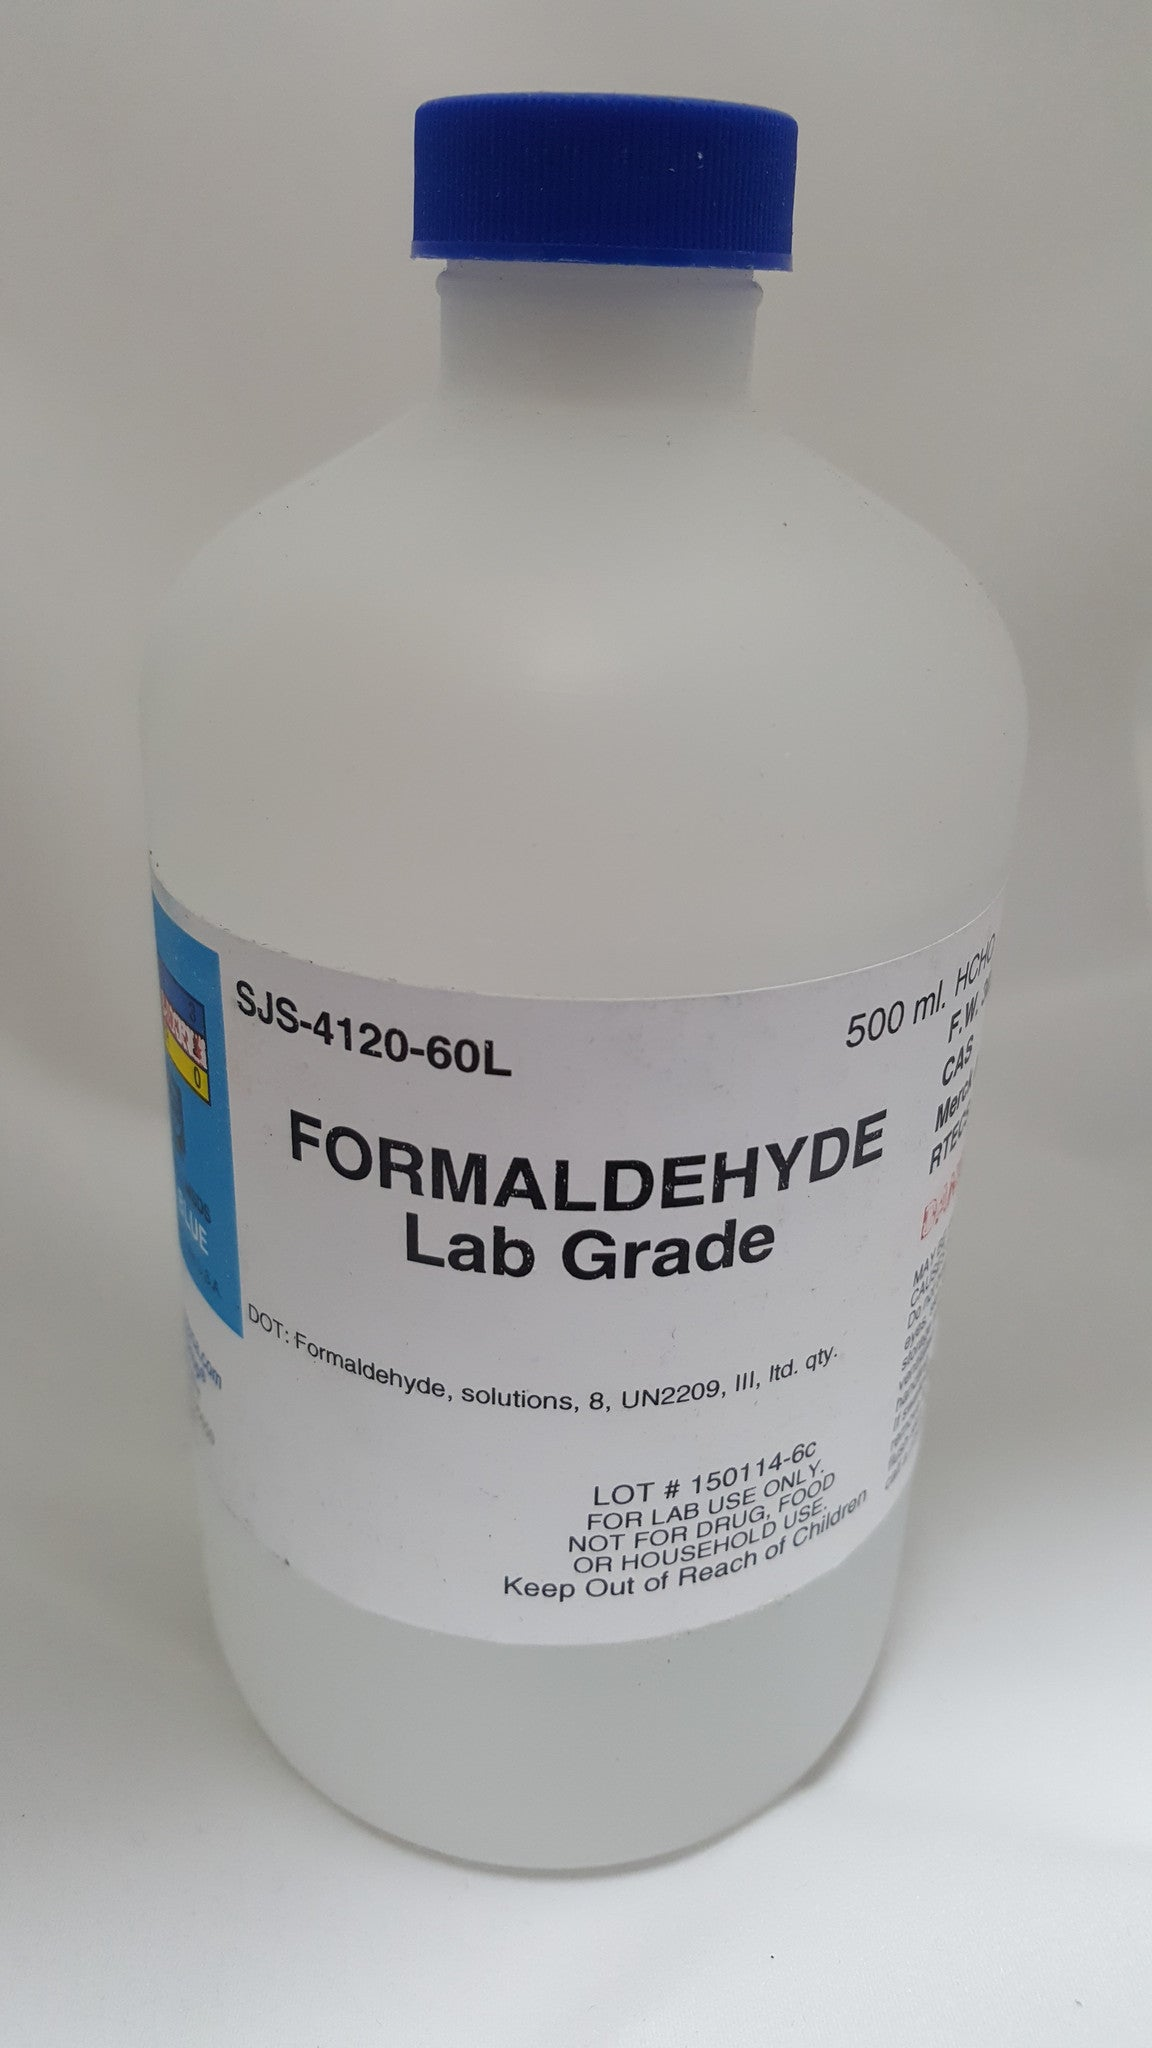 Formaldehyde Solution Lab Grade 500mL 37% - The Science Shop